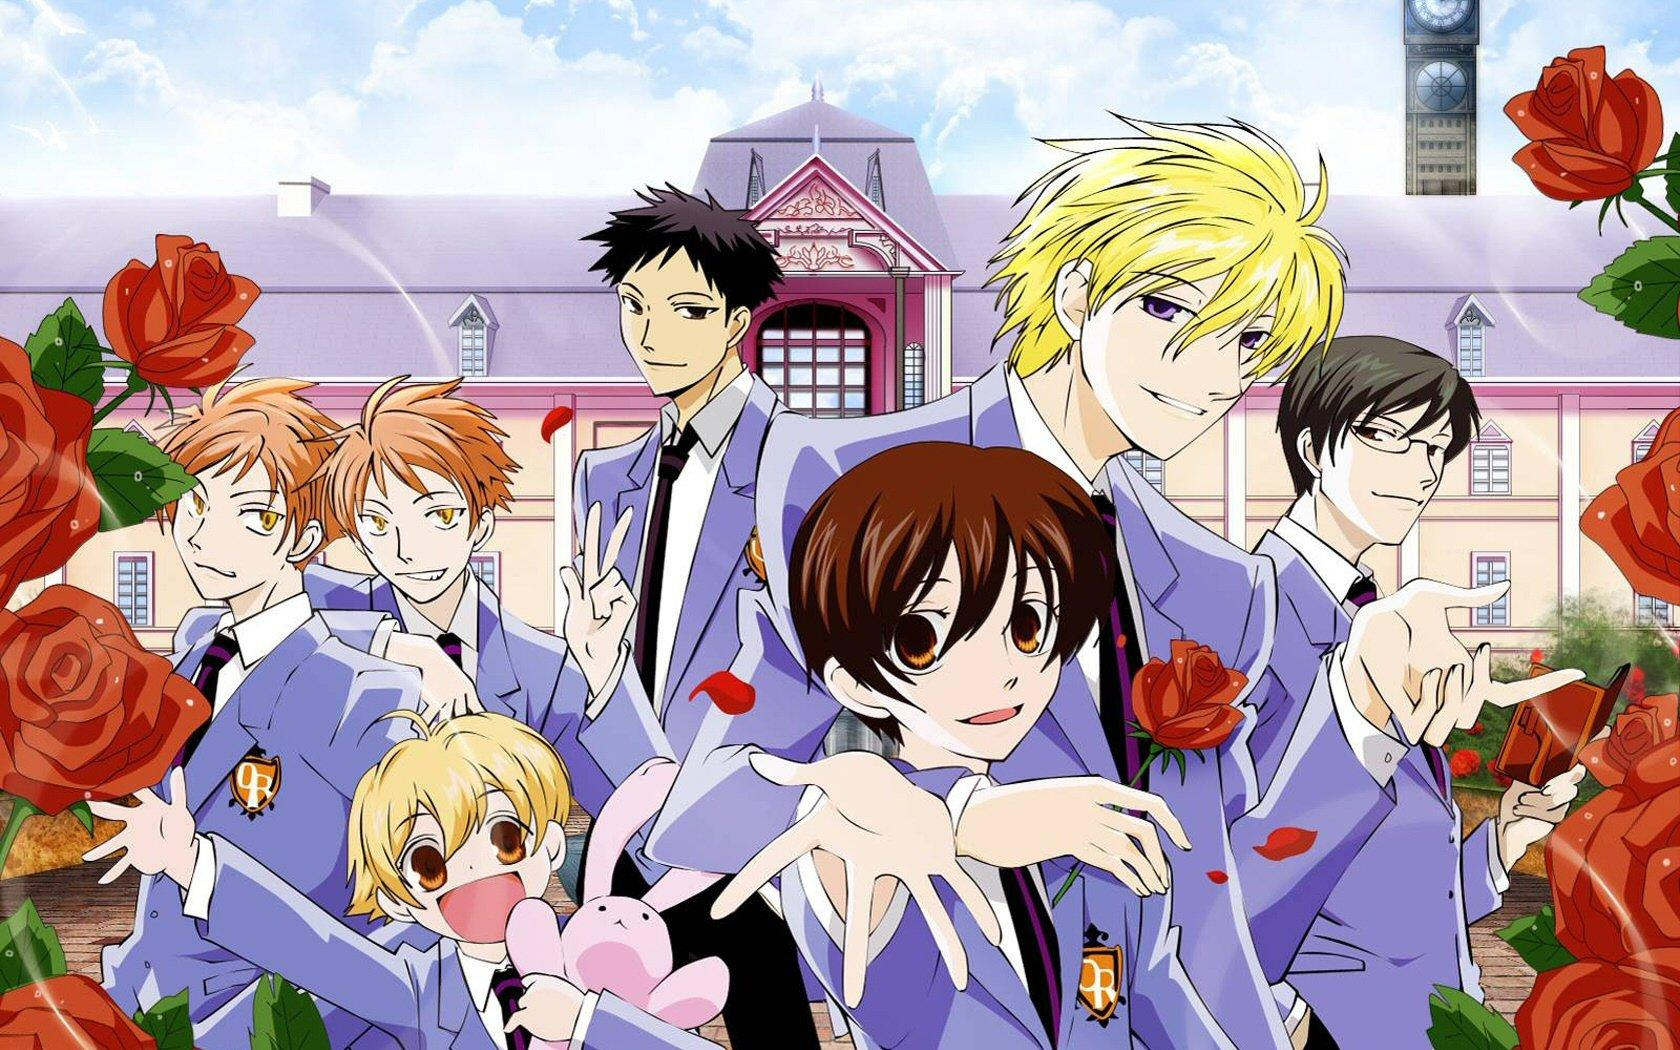 anime just like brothers conflict Ouran High School Host Club